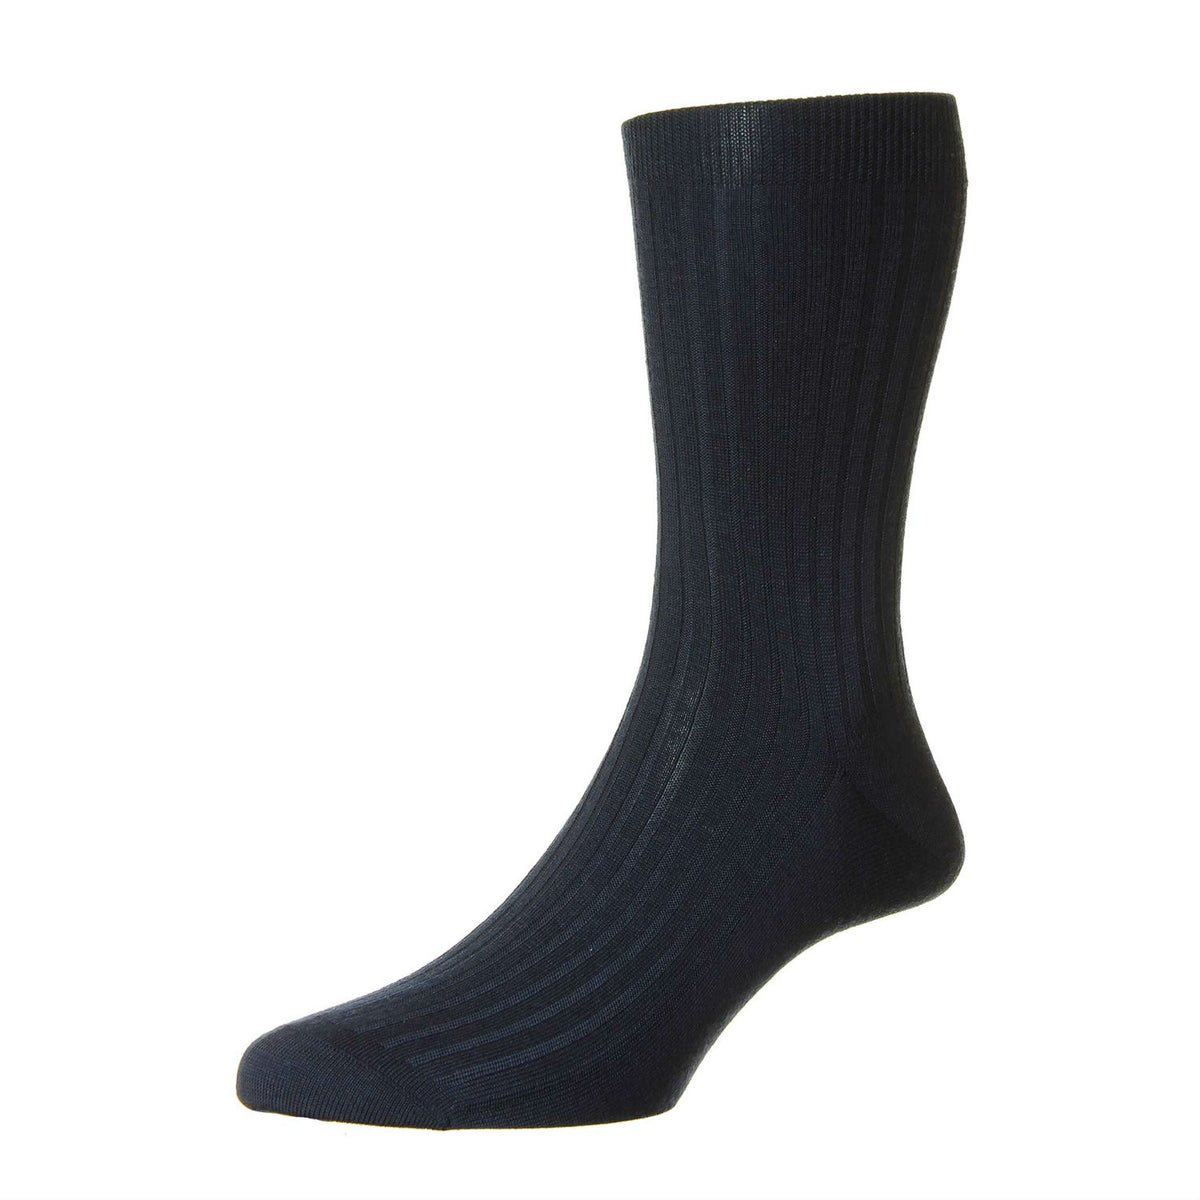 Mens Navy Blue Pure Cashmere Socks | Made in England | Calf Length Sock | shop at The Cashmere Choice London